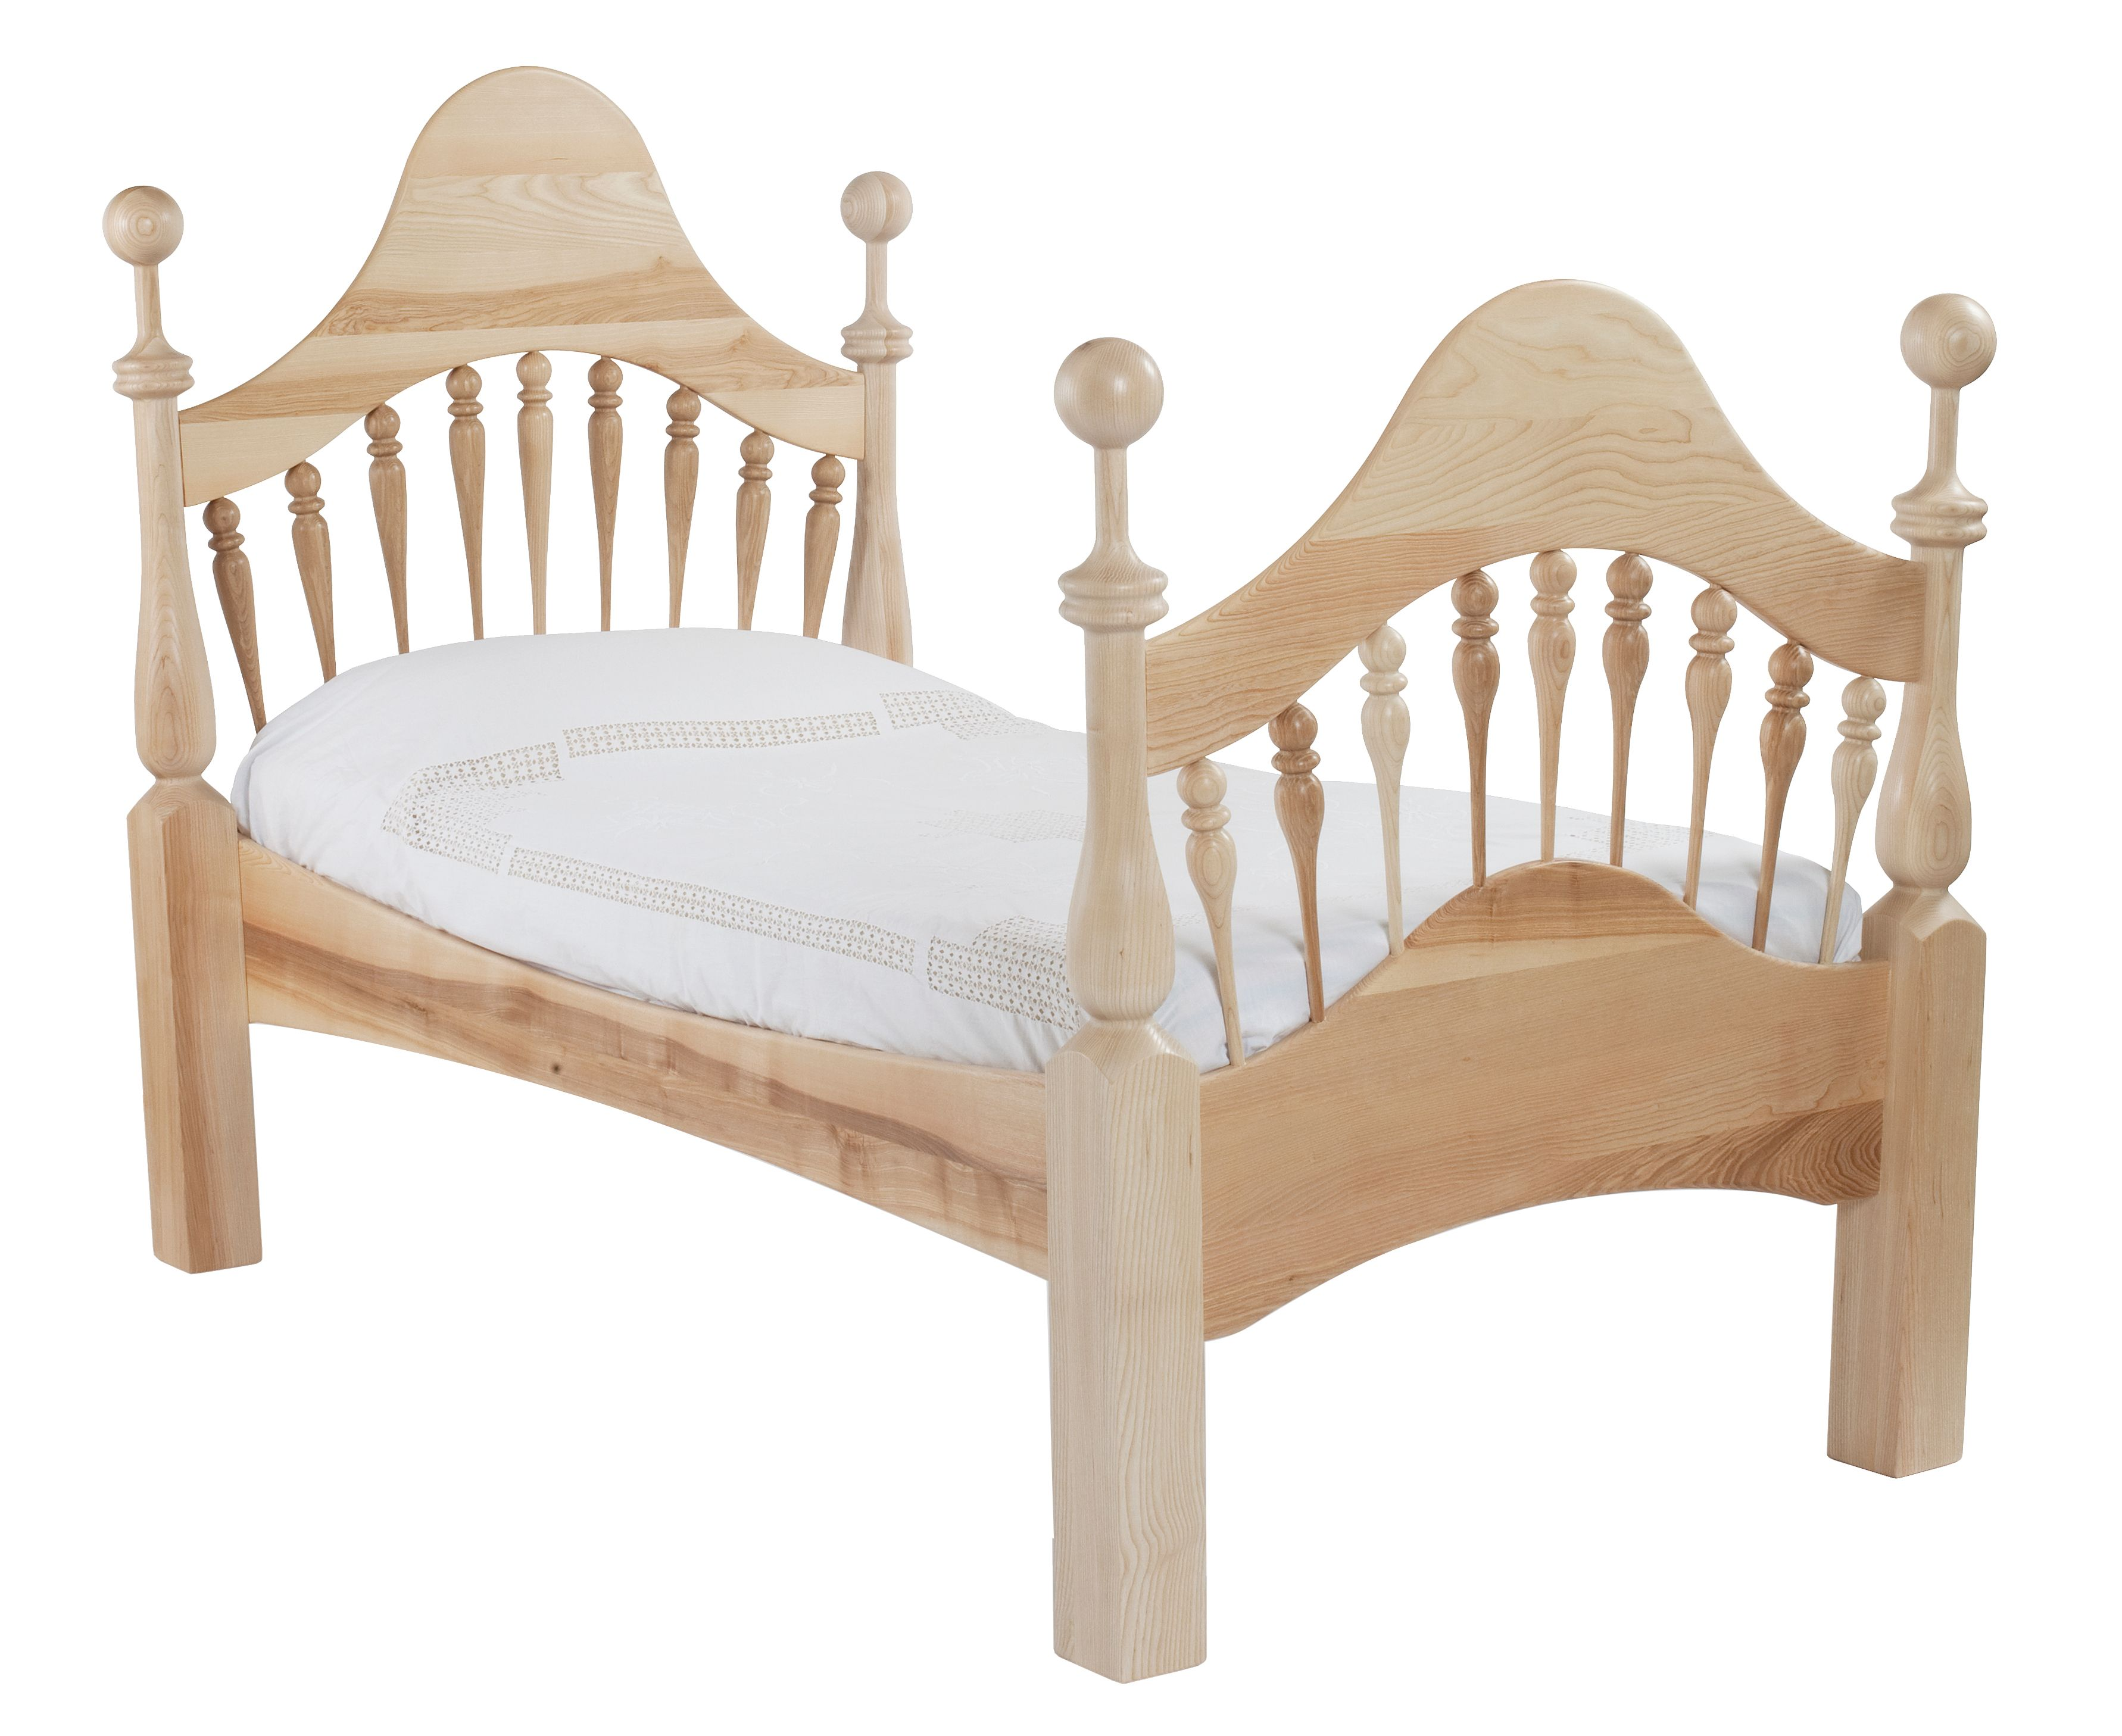 The Baby Cot Shop The Baby Cot Shop Storybook Bed